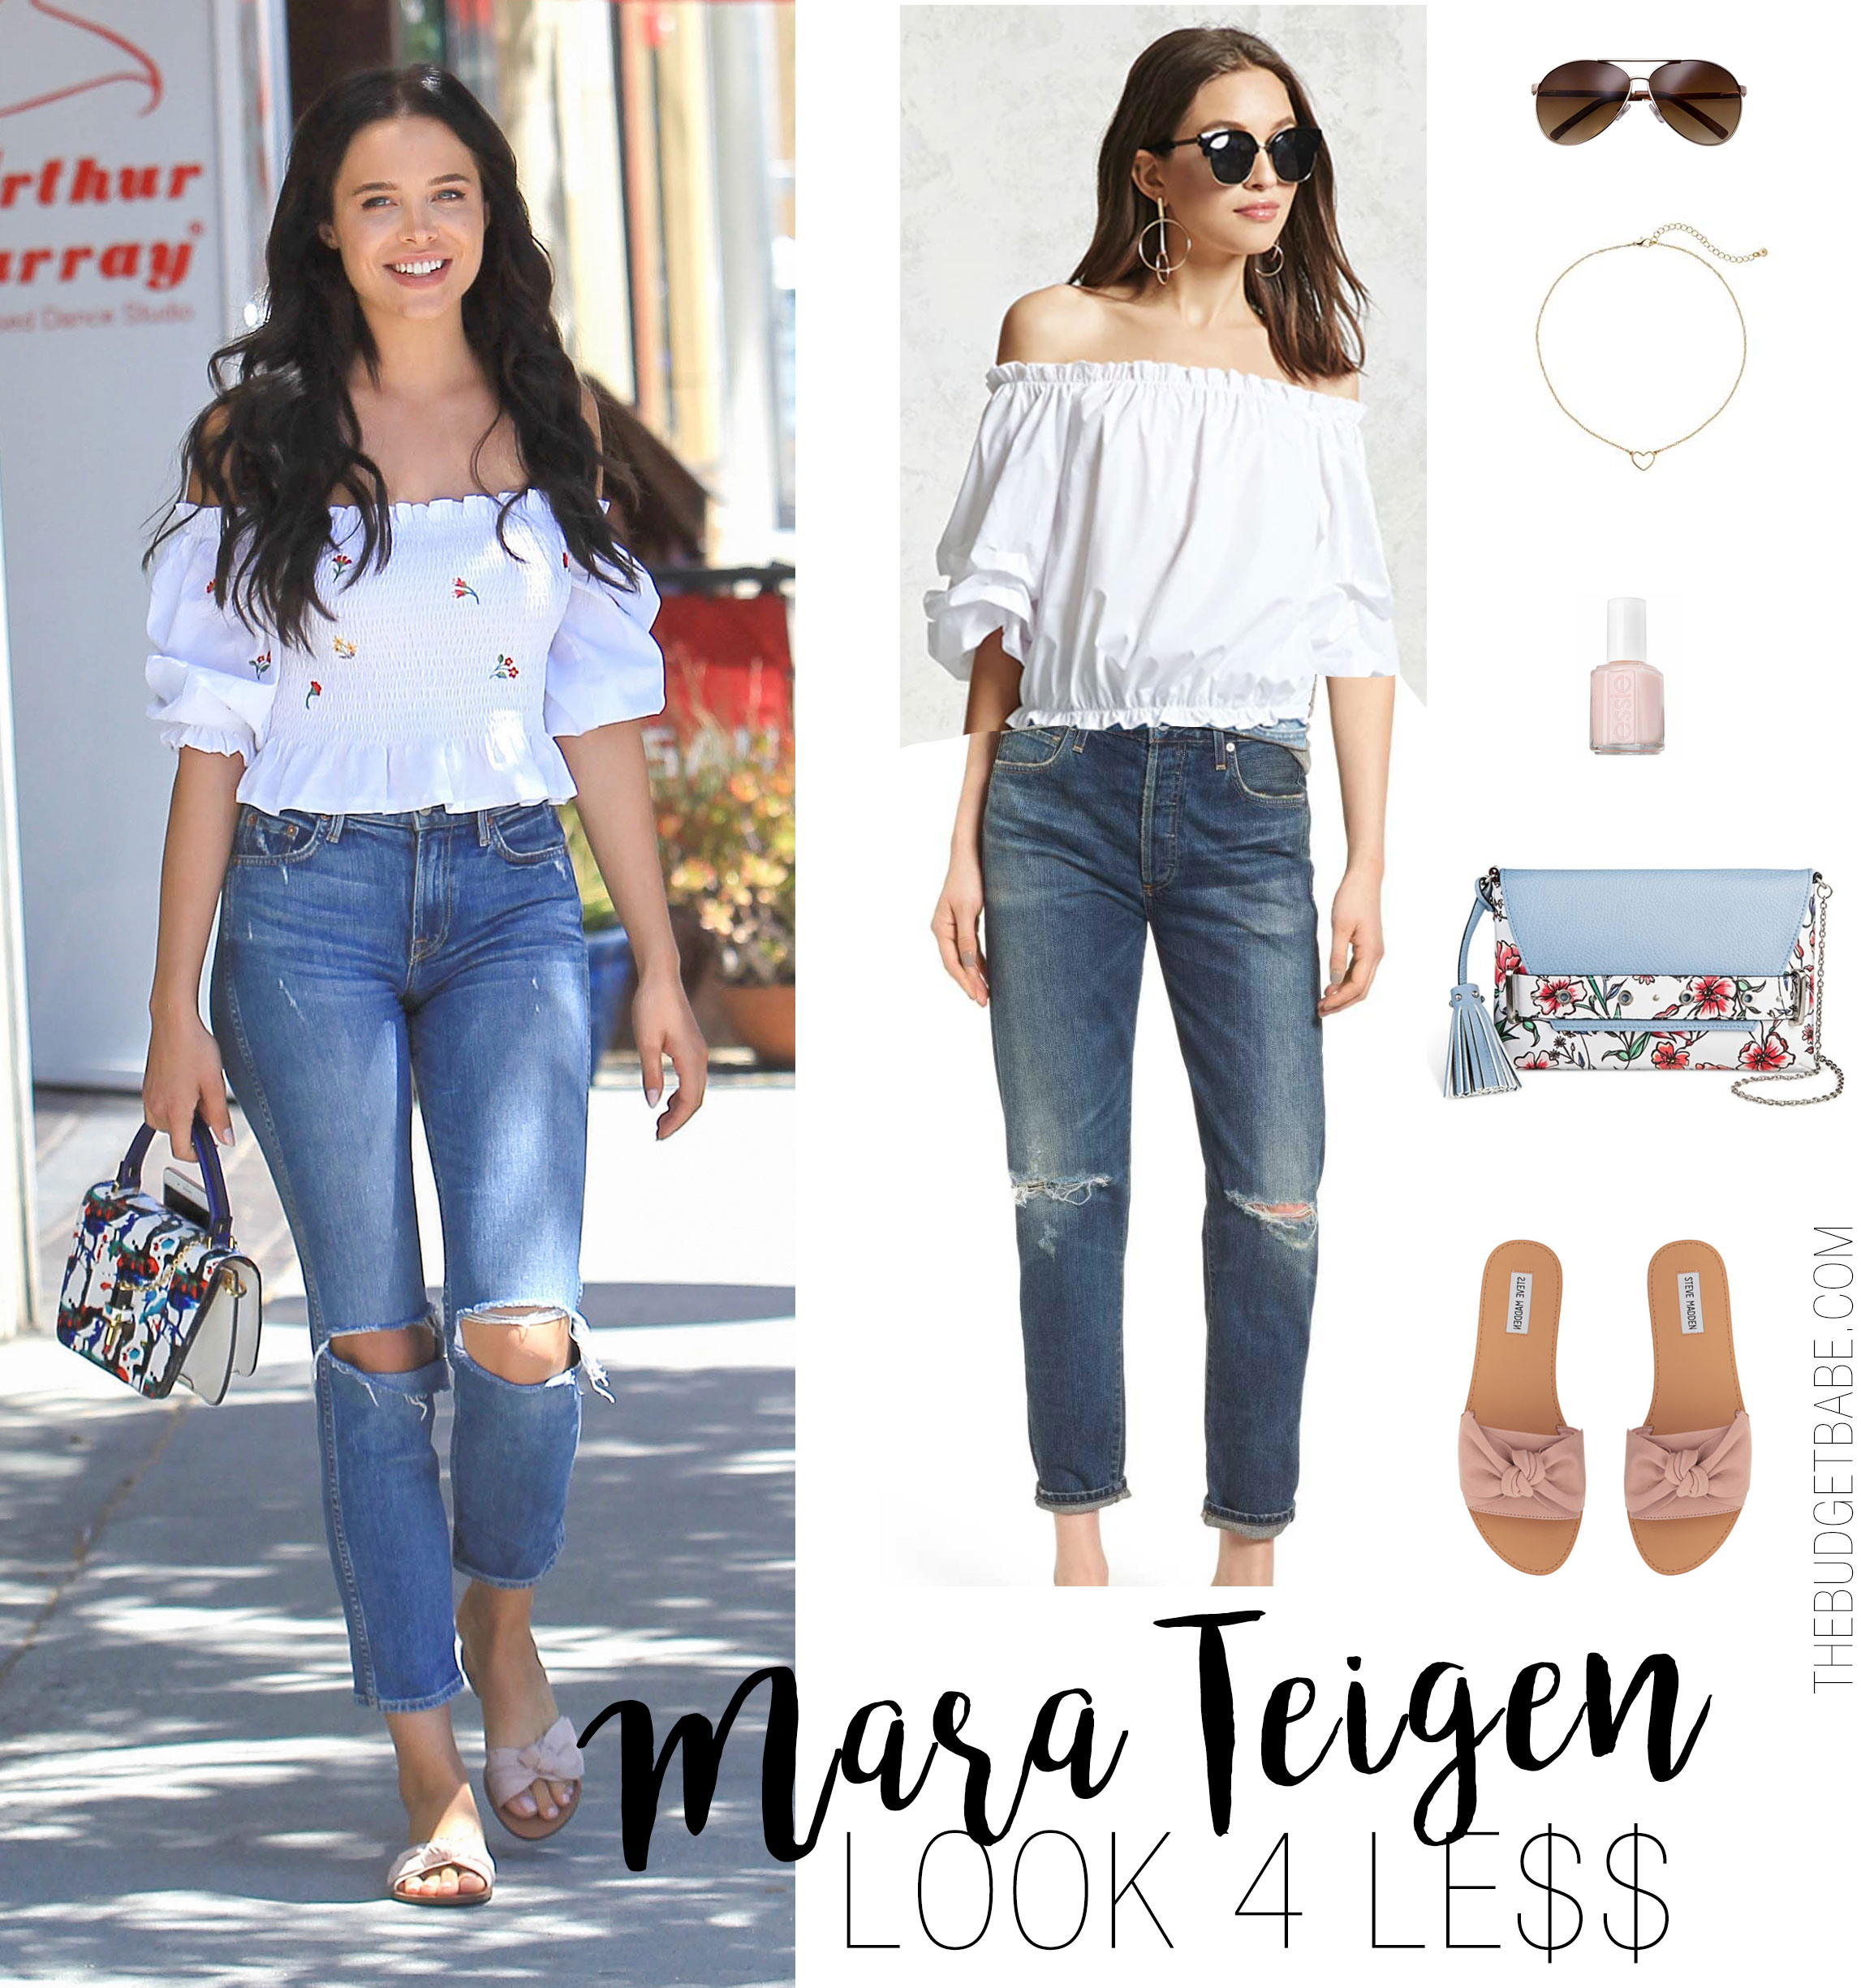 How to style an off-the-shoulder top for summer